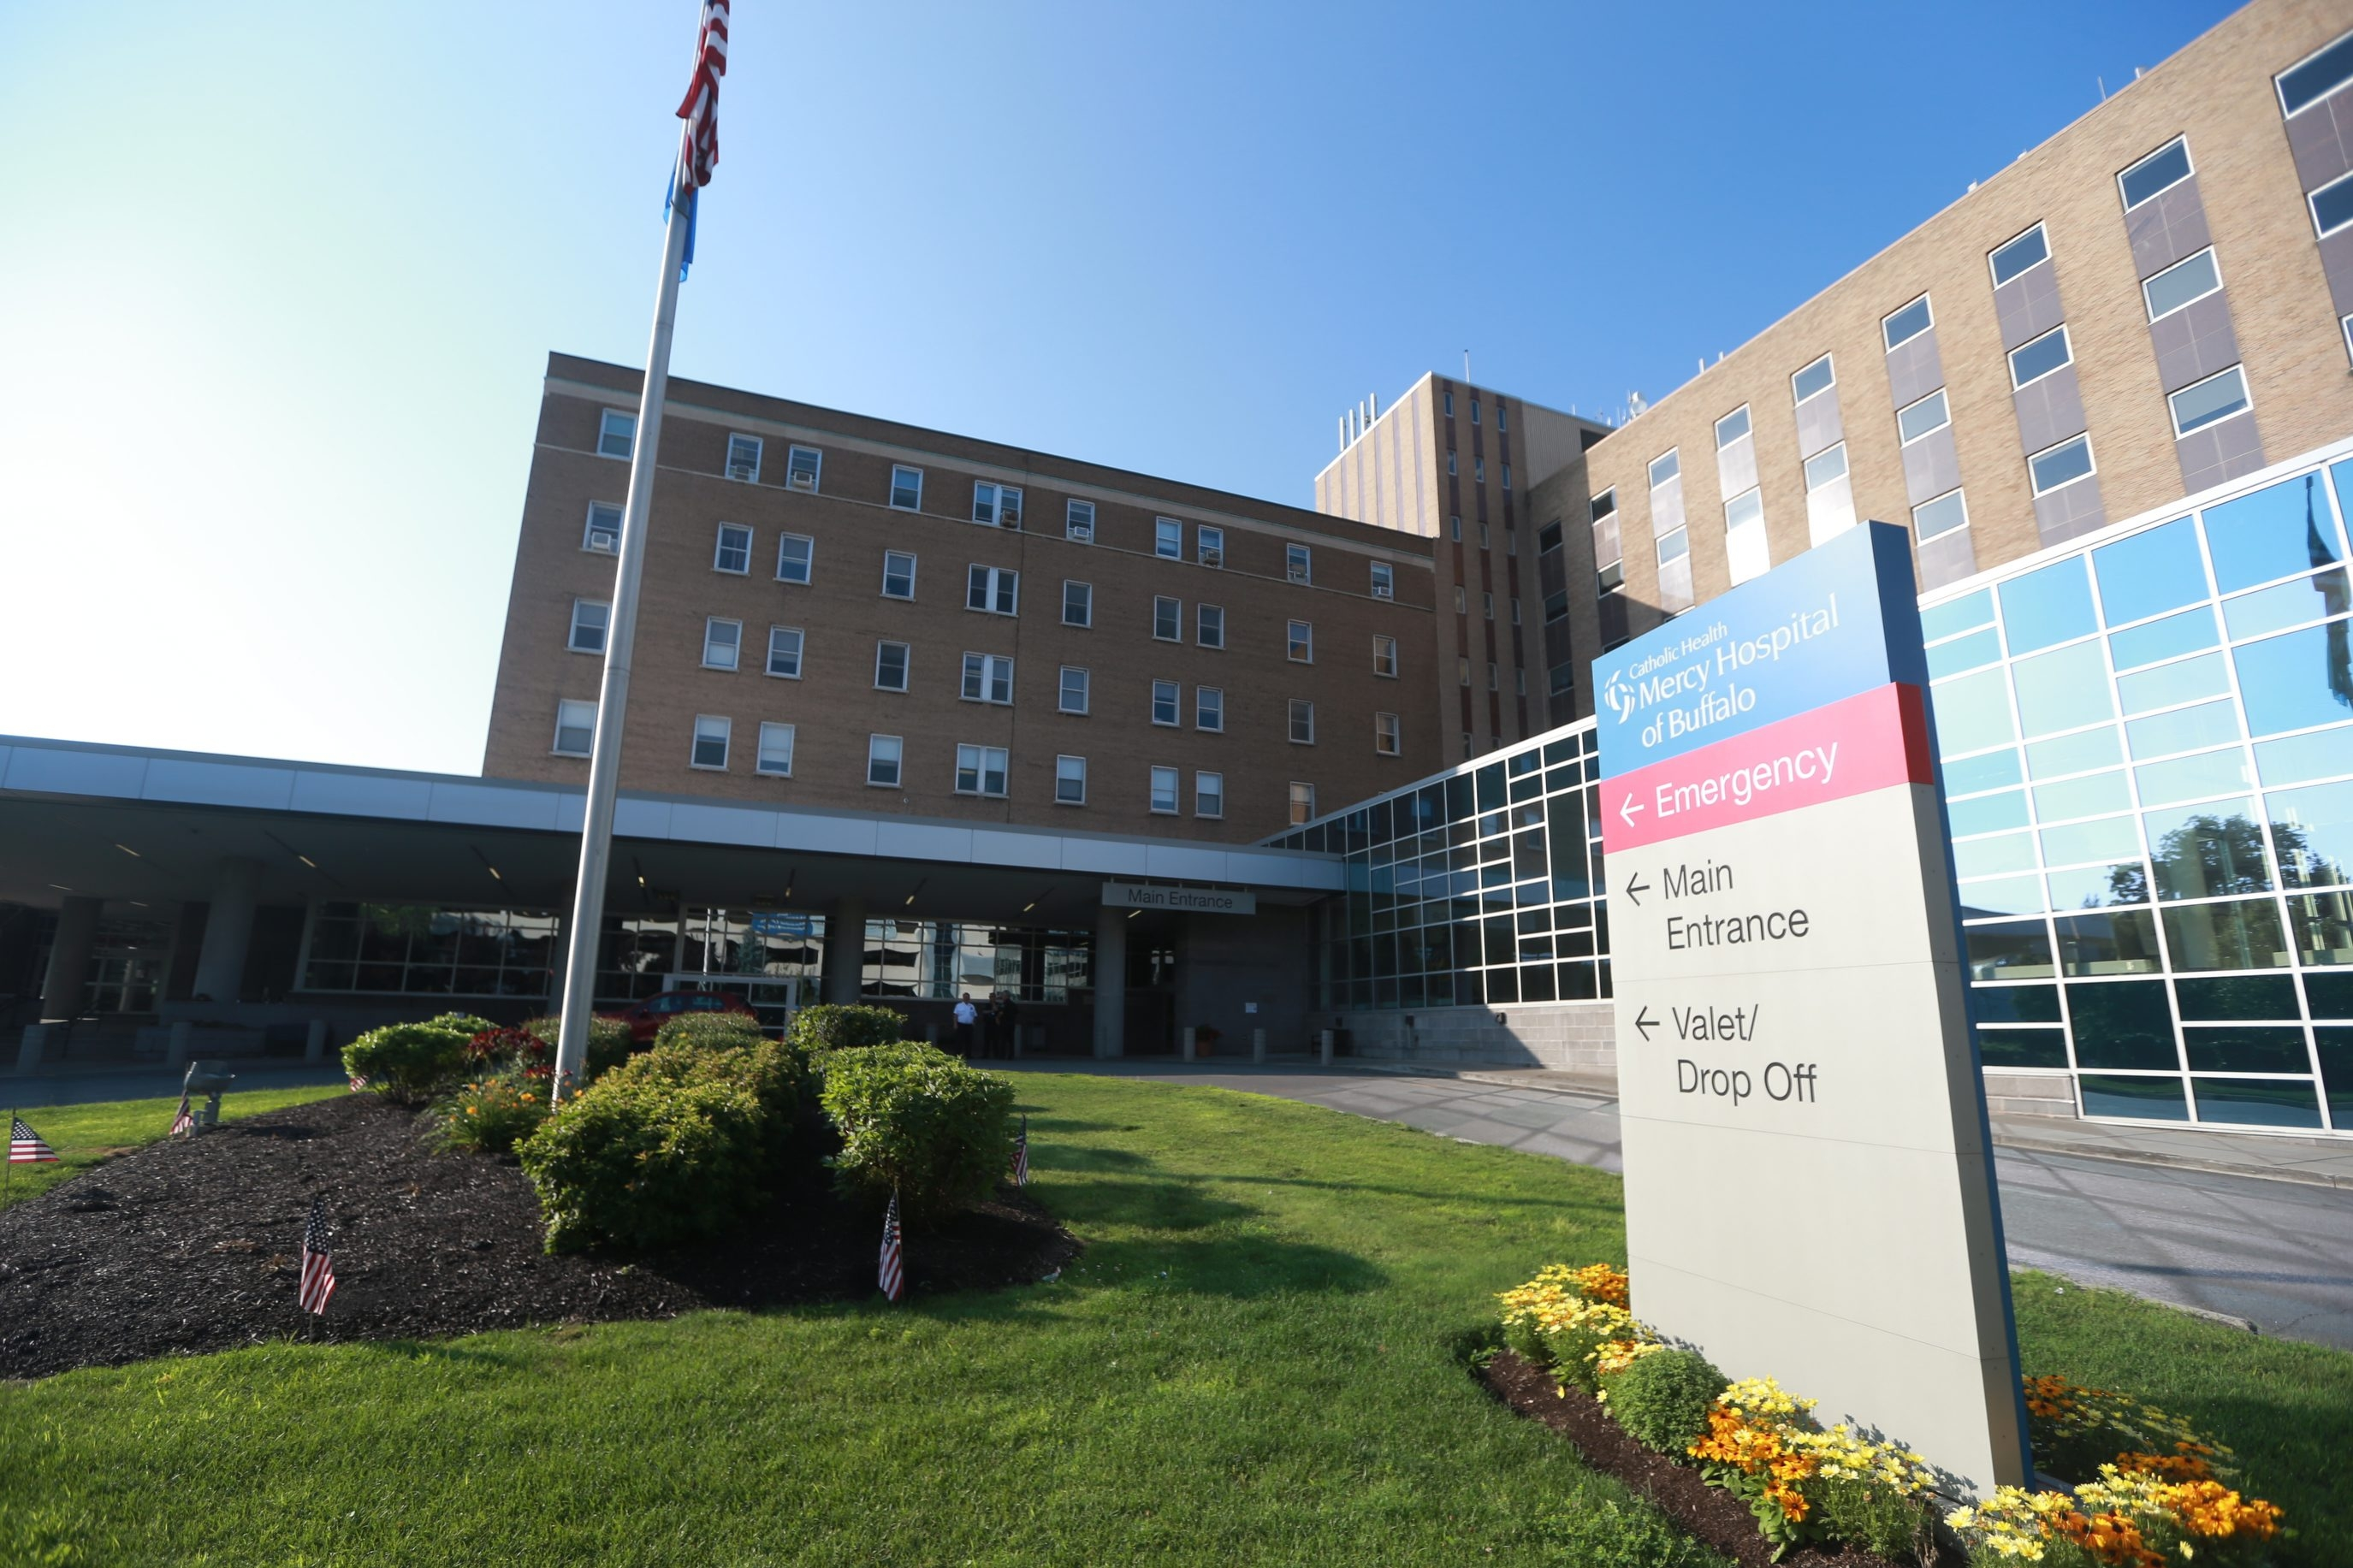 Registered nurses and service, technical and clerical associates at Mercy Hospital of Buffalo are among the employees expected to receive wage increases and improvements in staffing and pension contributions under their new contract with Catholic Health Systems. (John Hickey/Buffalo News)